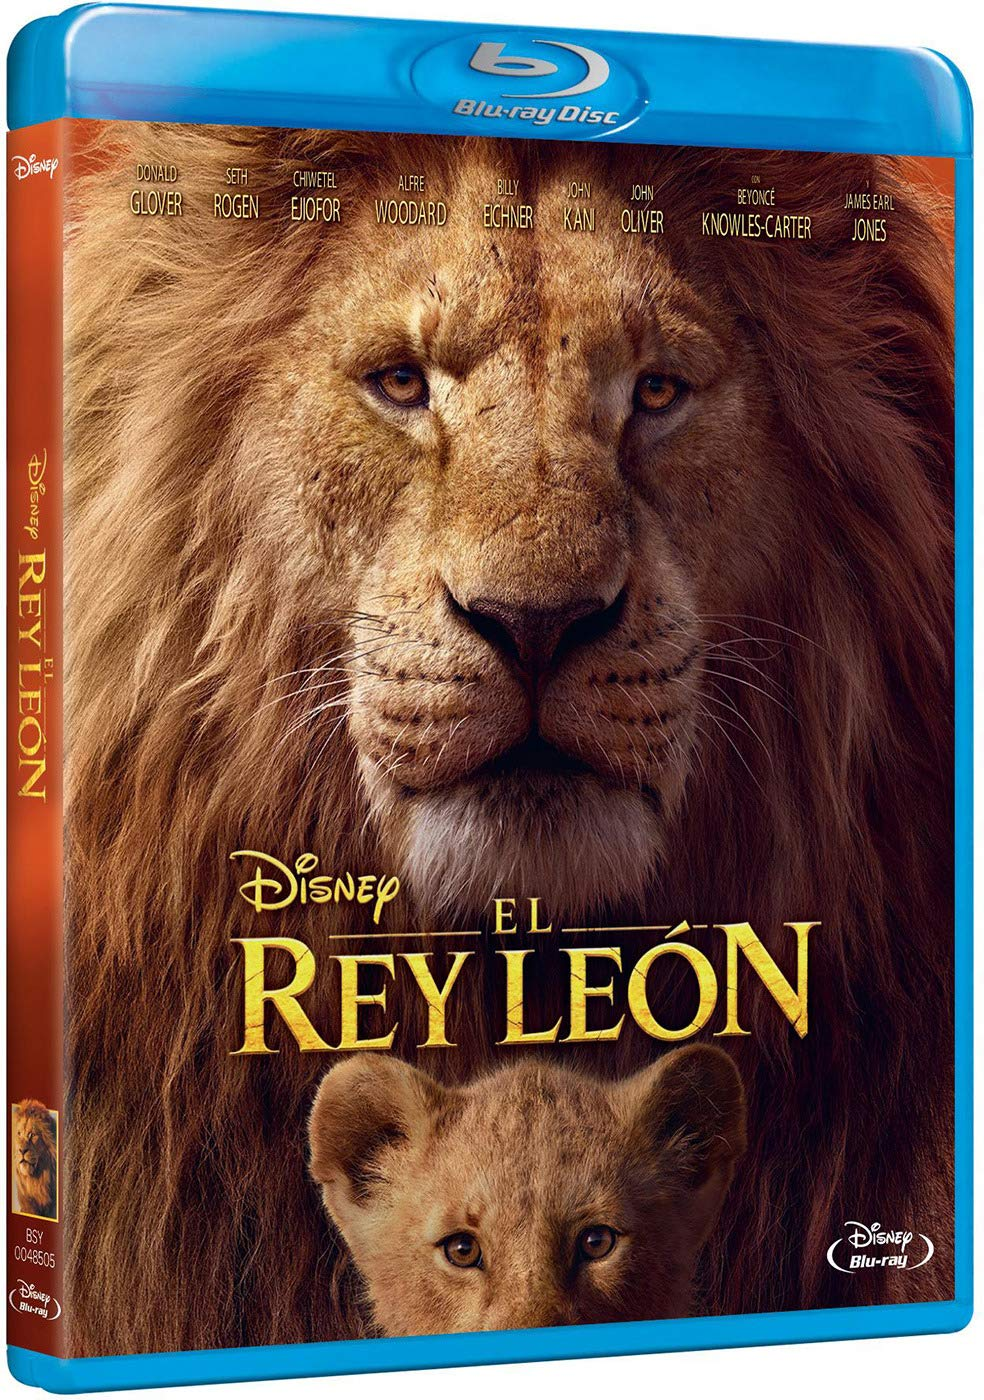 El Rey León Bd Imagen Real Blu Ray Amazon Es Donald Glover Beyoncé Knowles Carter James Earl Jones Jon Favreau Donald Glover Beyoncé Knowles Carter Waltdisneypictures Fairviewentertainment Cine Y Series Tv